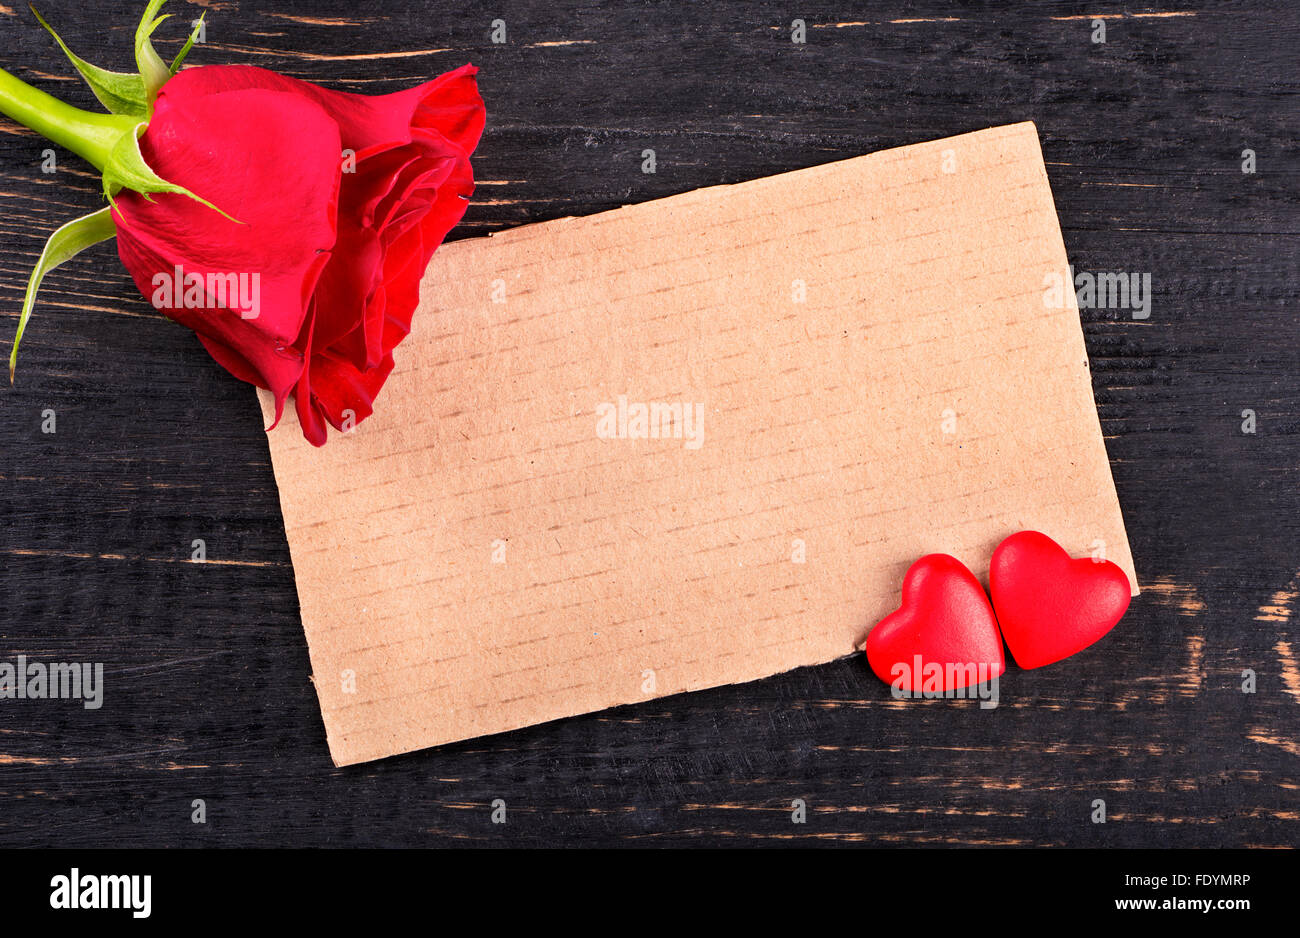 blank paper valentine card with two hearts and a red rose on wooden